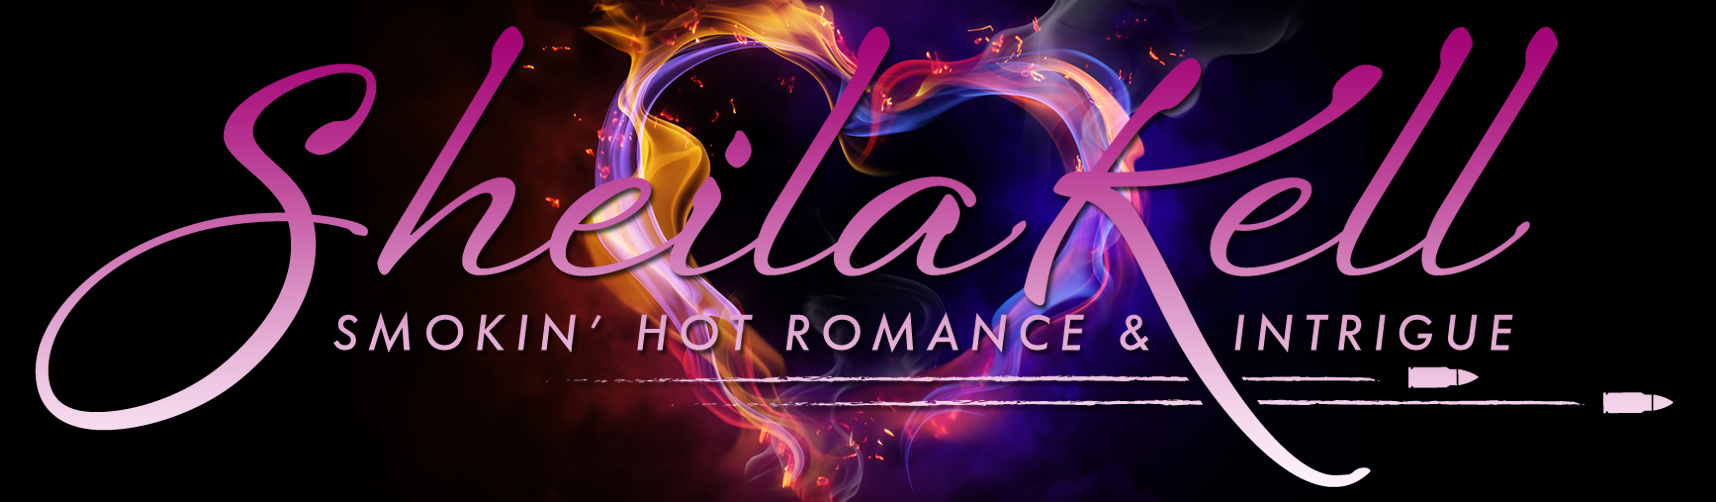 Smokin' Hot Romance & Intrigue